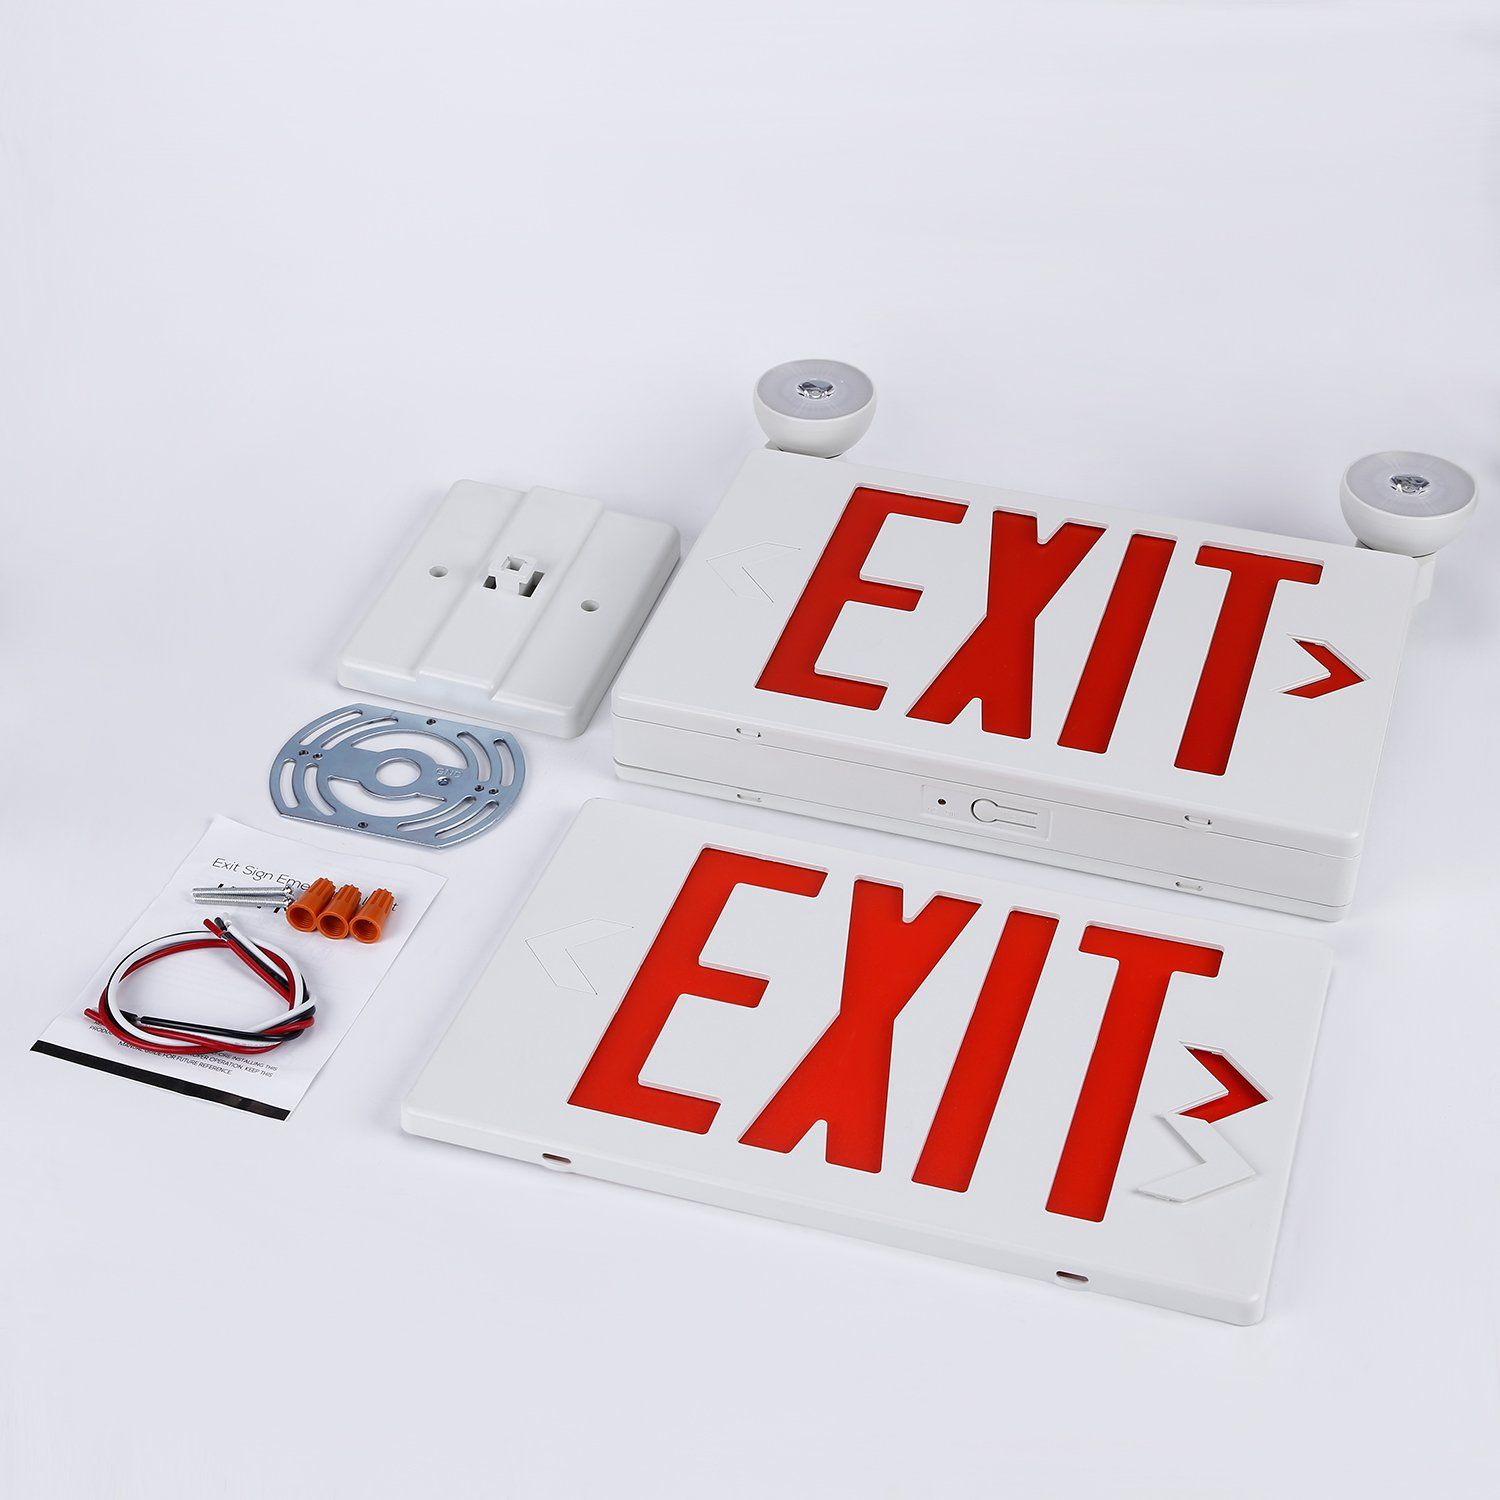 Red Led Exit Sign With Ul Listed Emergency Light Ac 120v 277v Battery Included Ceiling Side Back Mount Sign Emergency Lighting Red Led Lighting Ceiling Fans